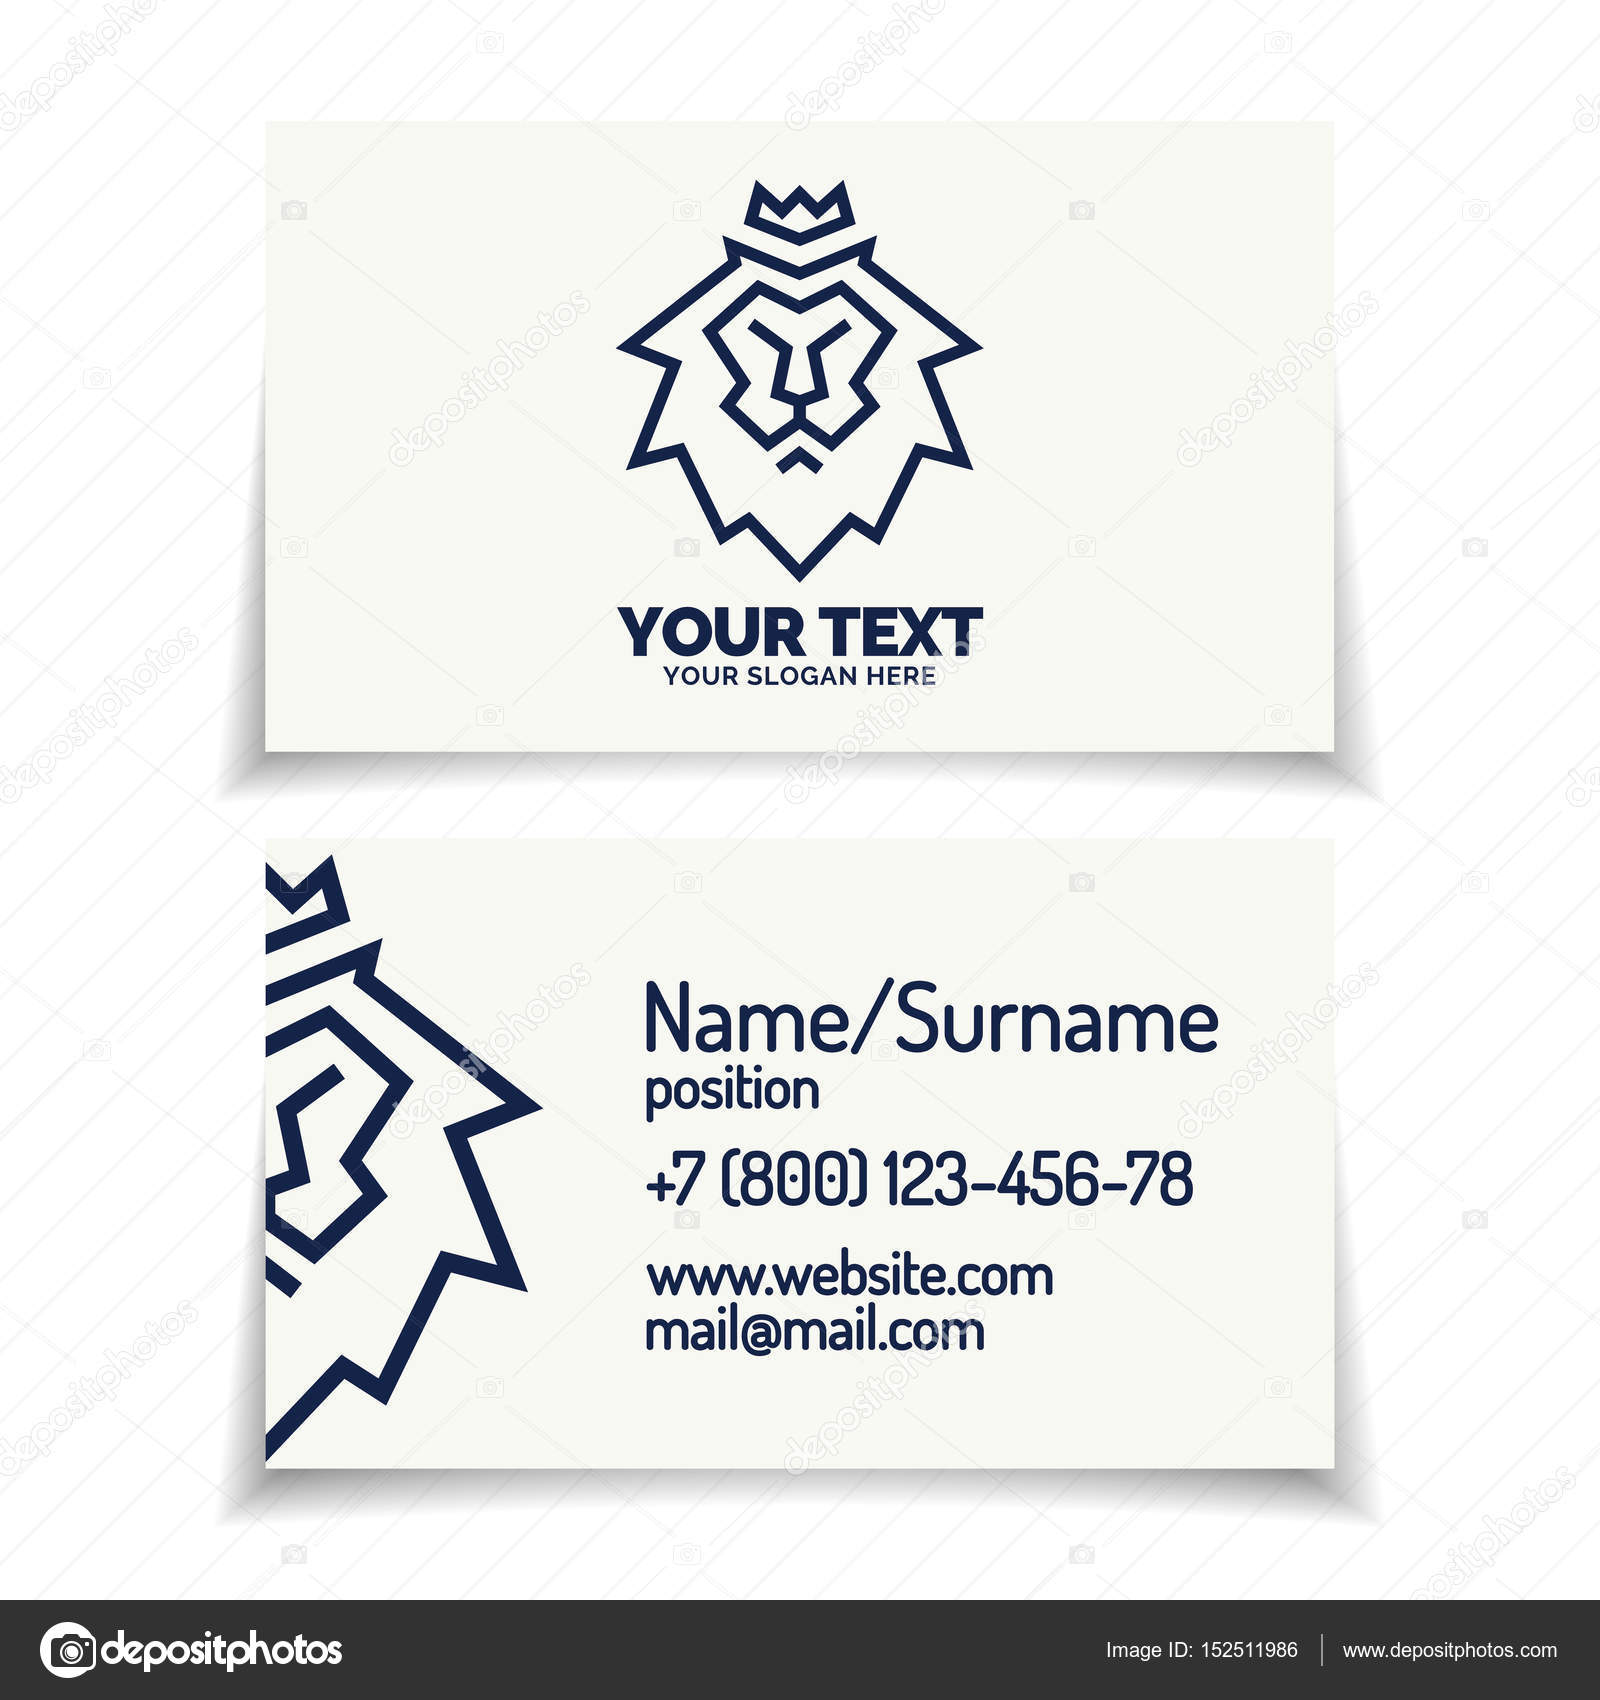 Best font for business card images free business cards fonts for business cards image collections free business cards business card with lion emblem cyan color magicingreecefo Image collections